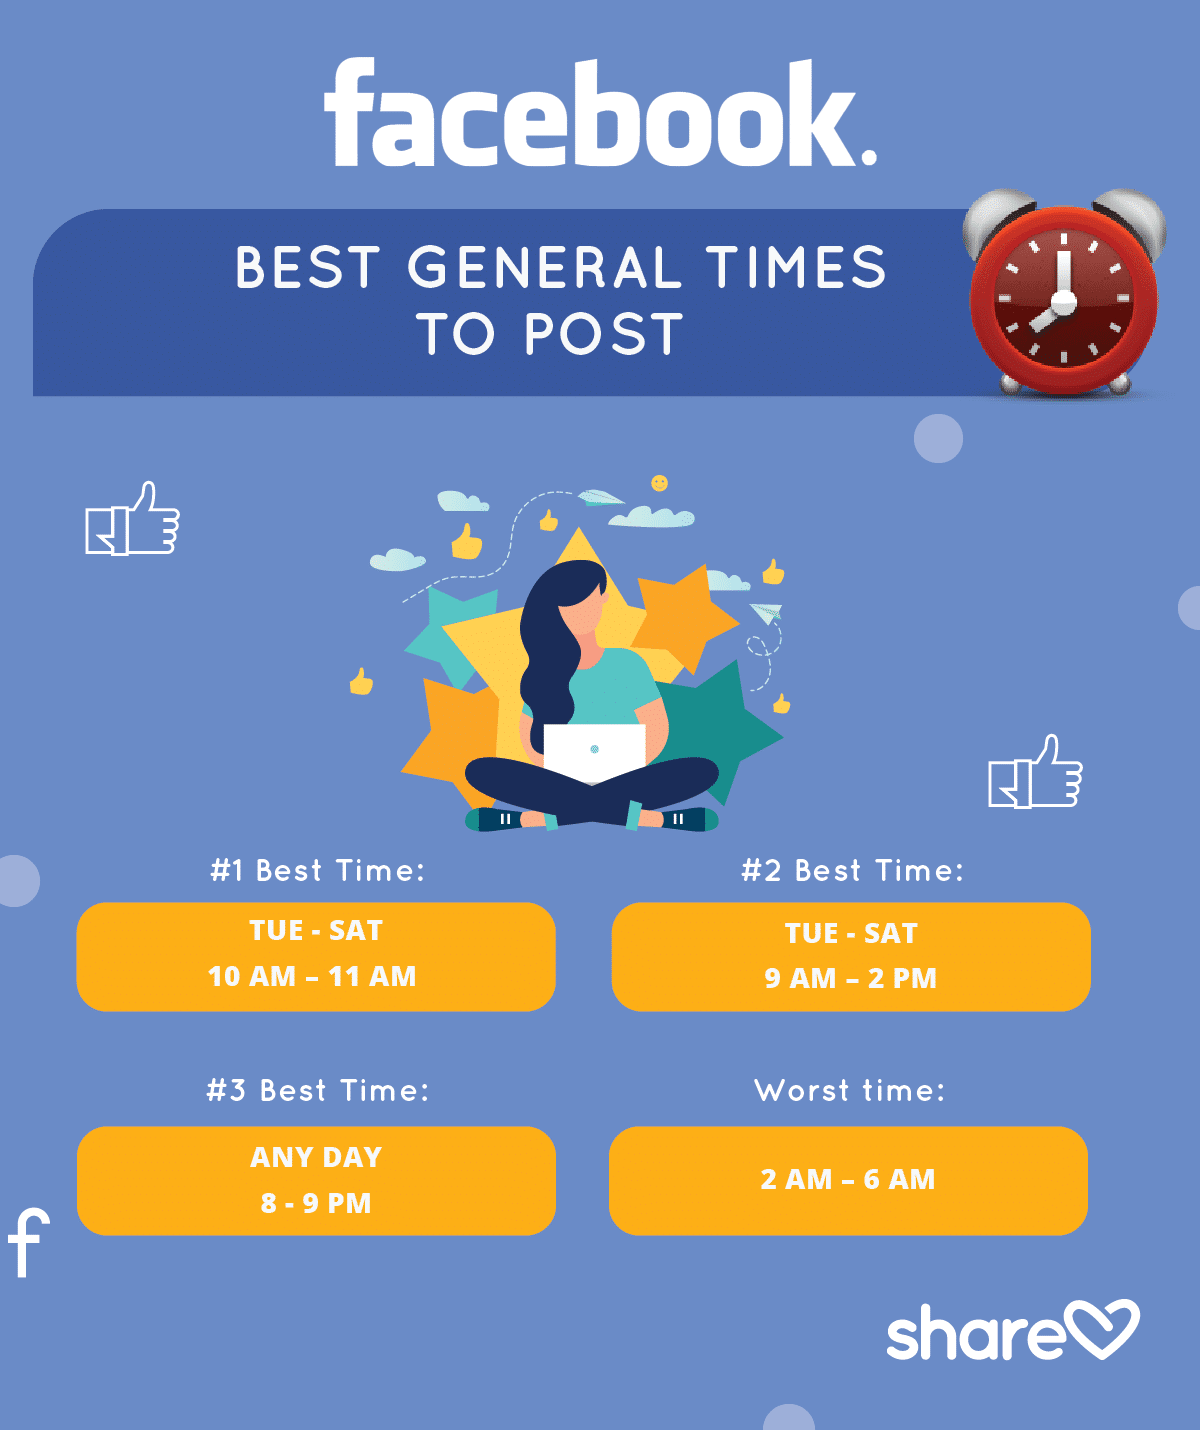 Best General Times to Post on Facebook